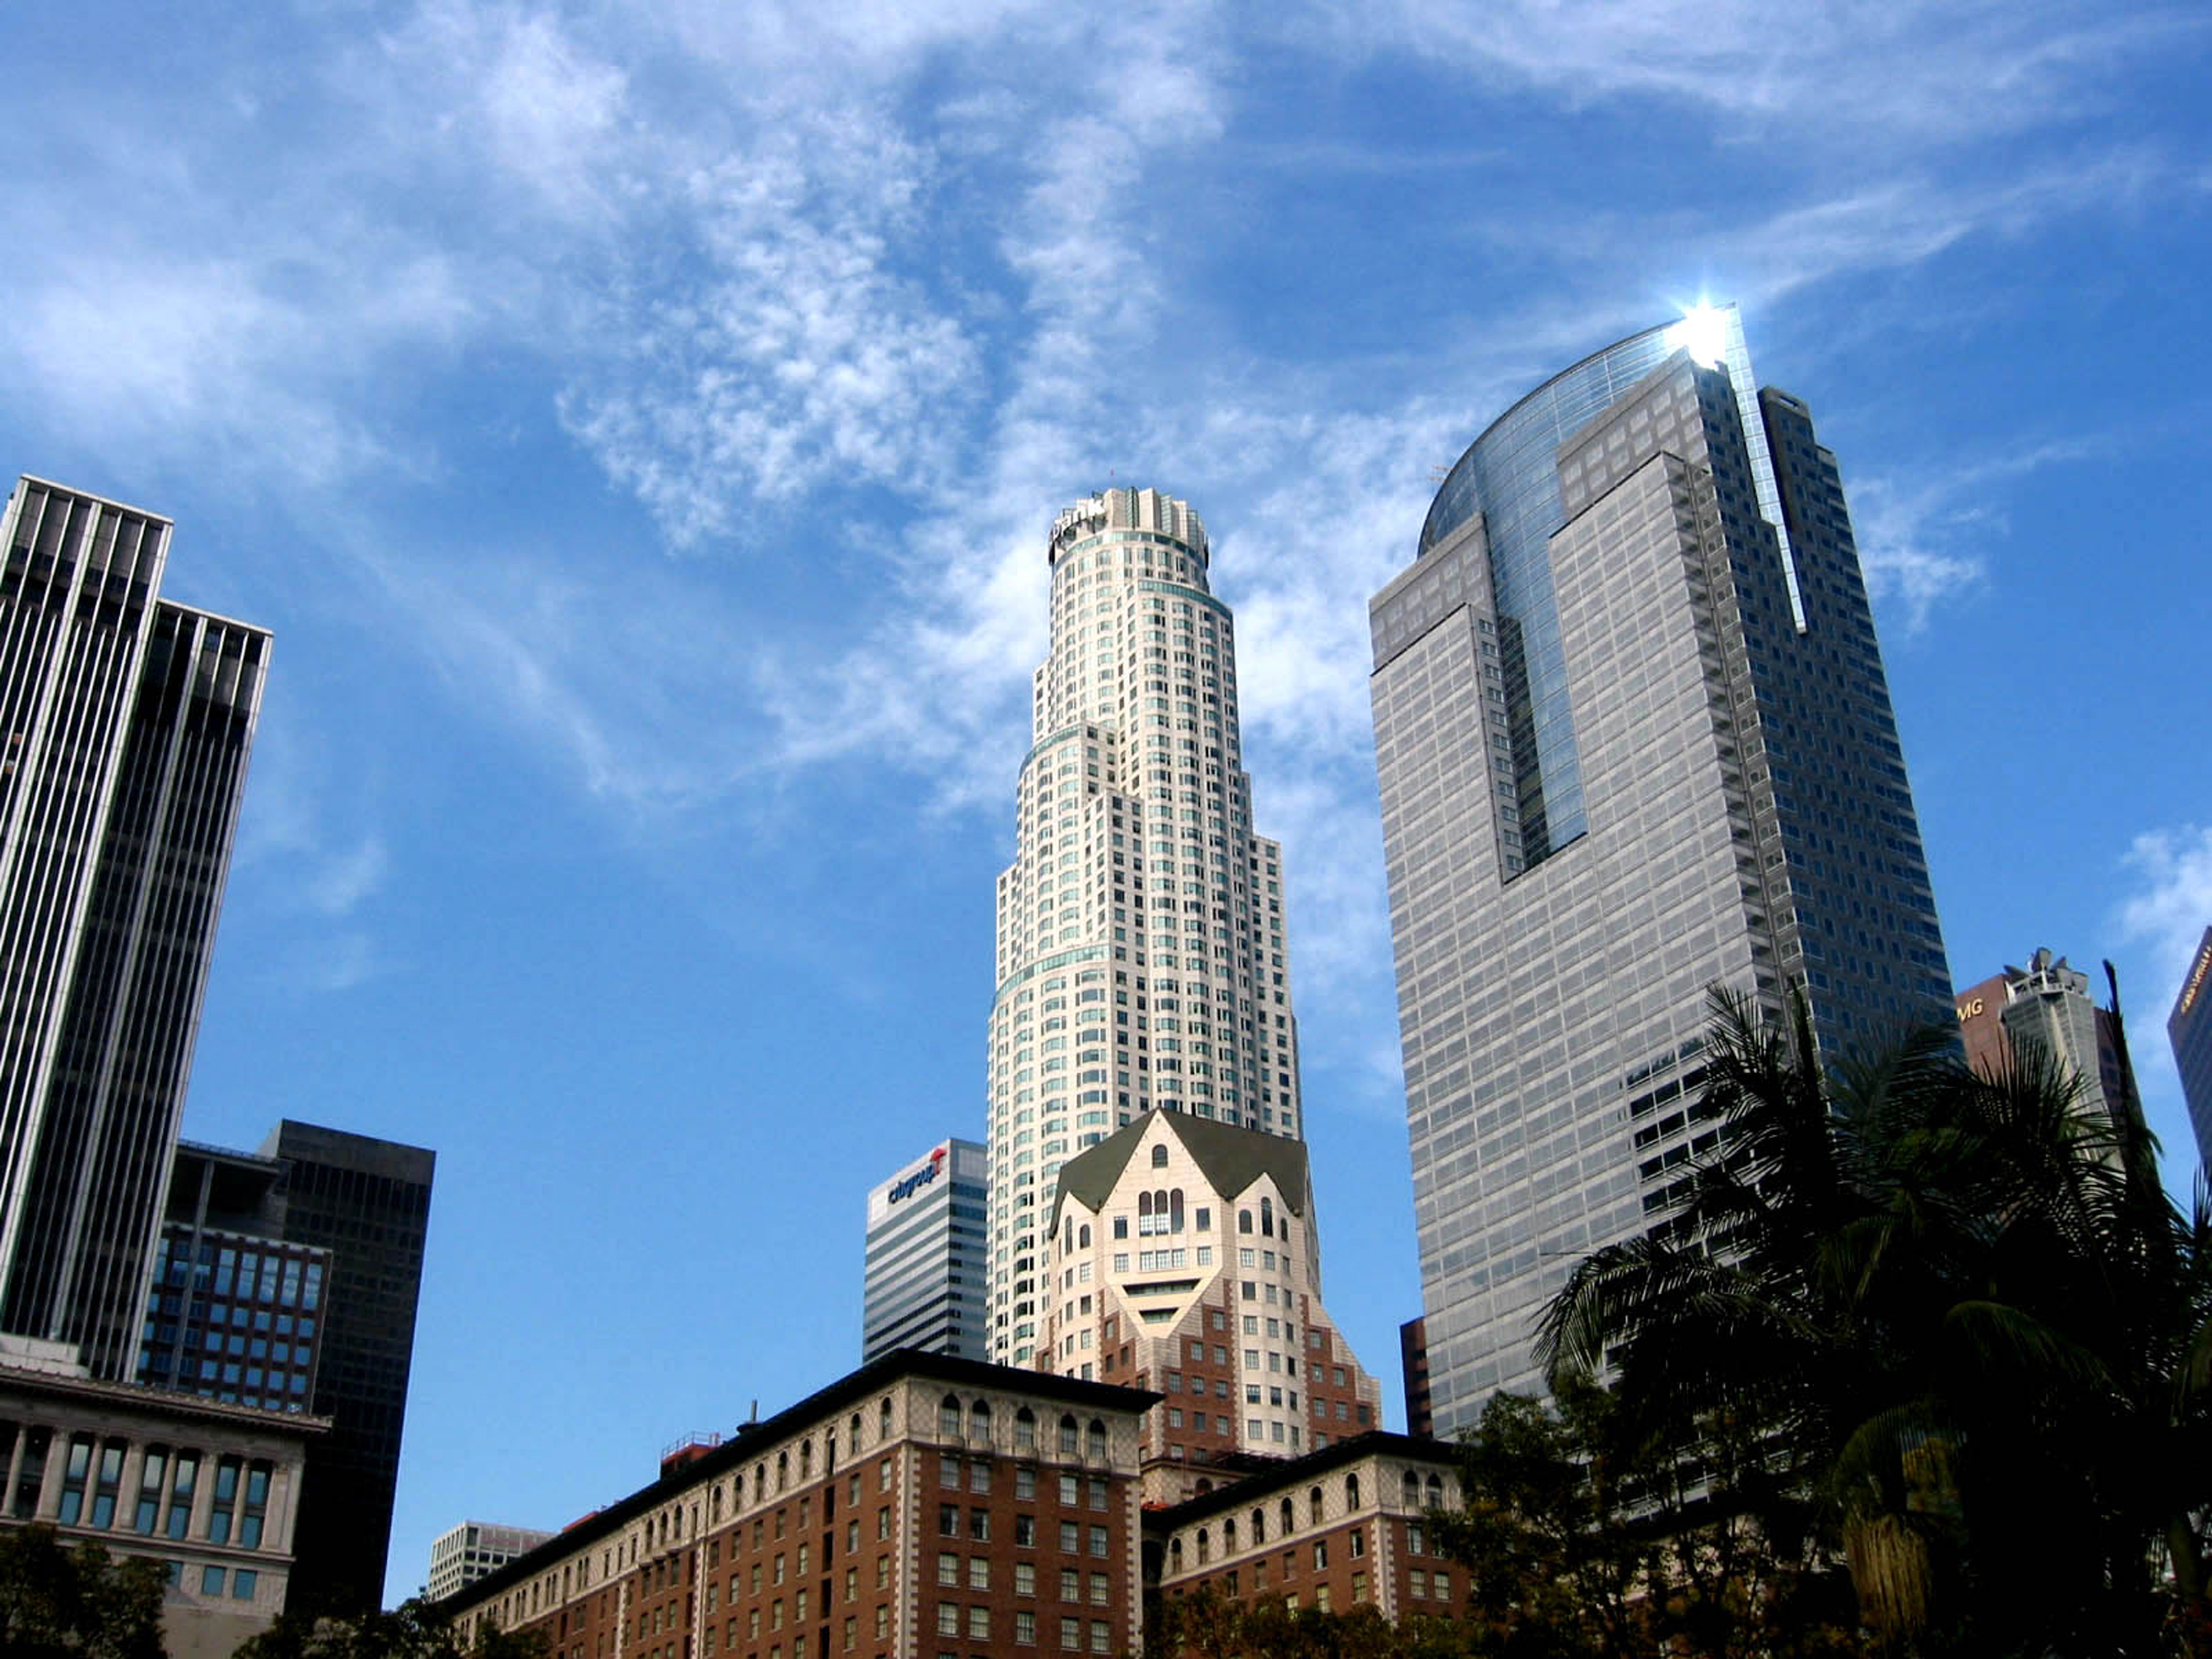 2013-07-15-DowntownSkyline1.jpg